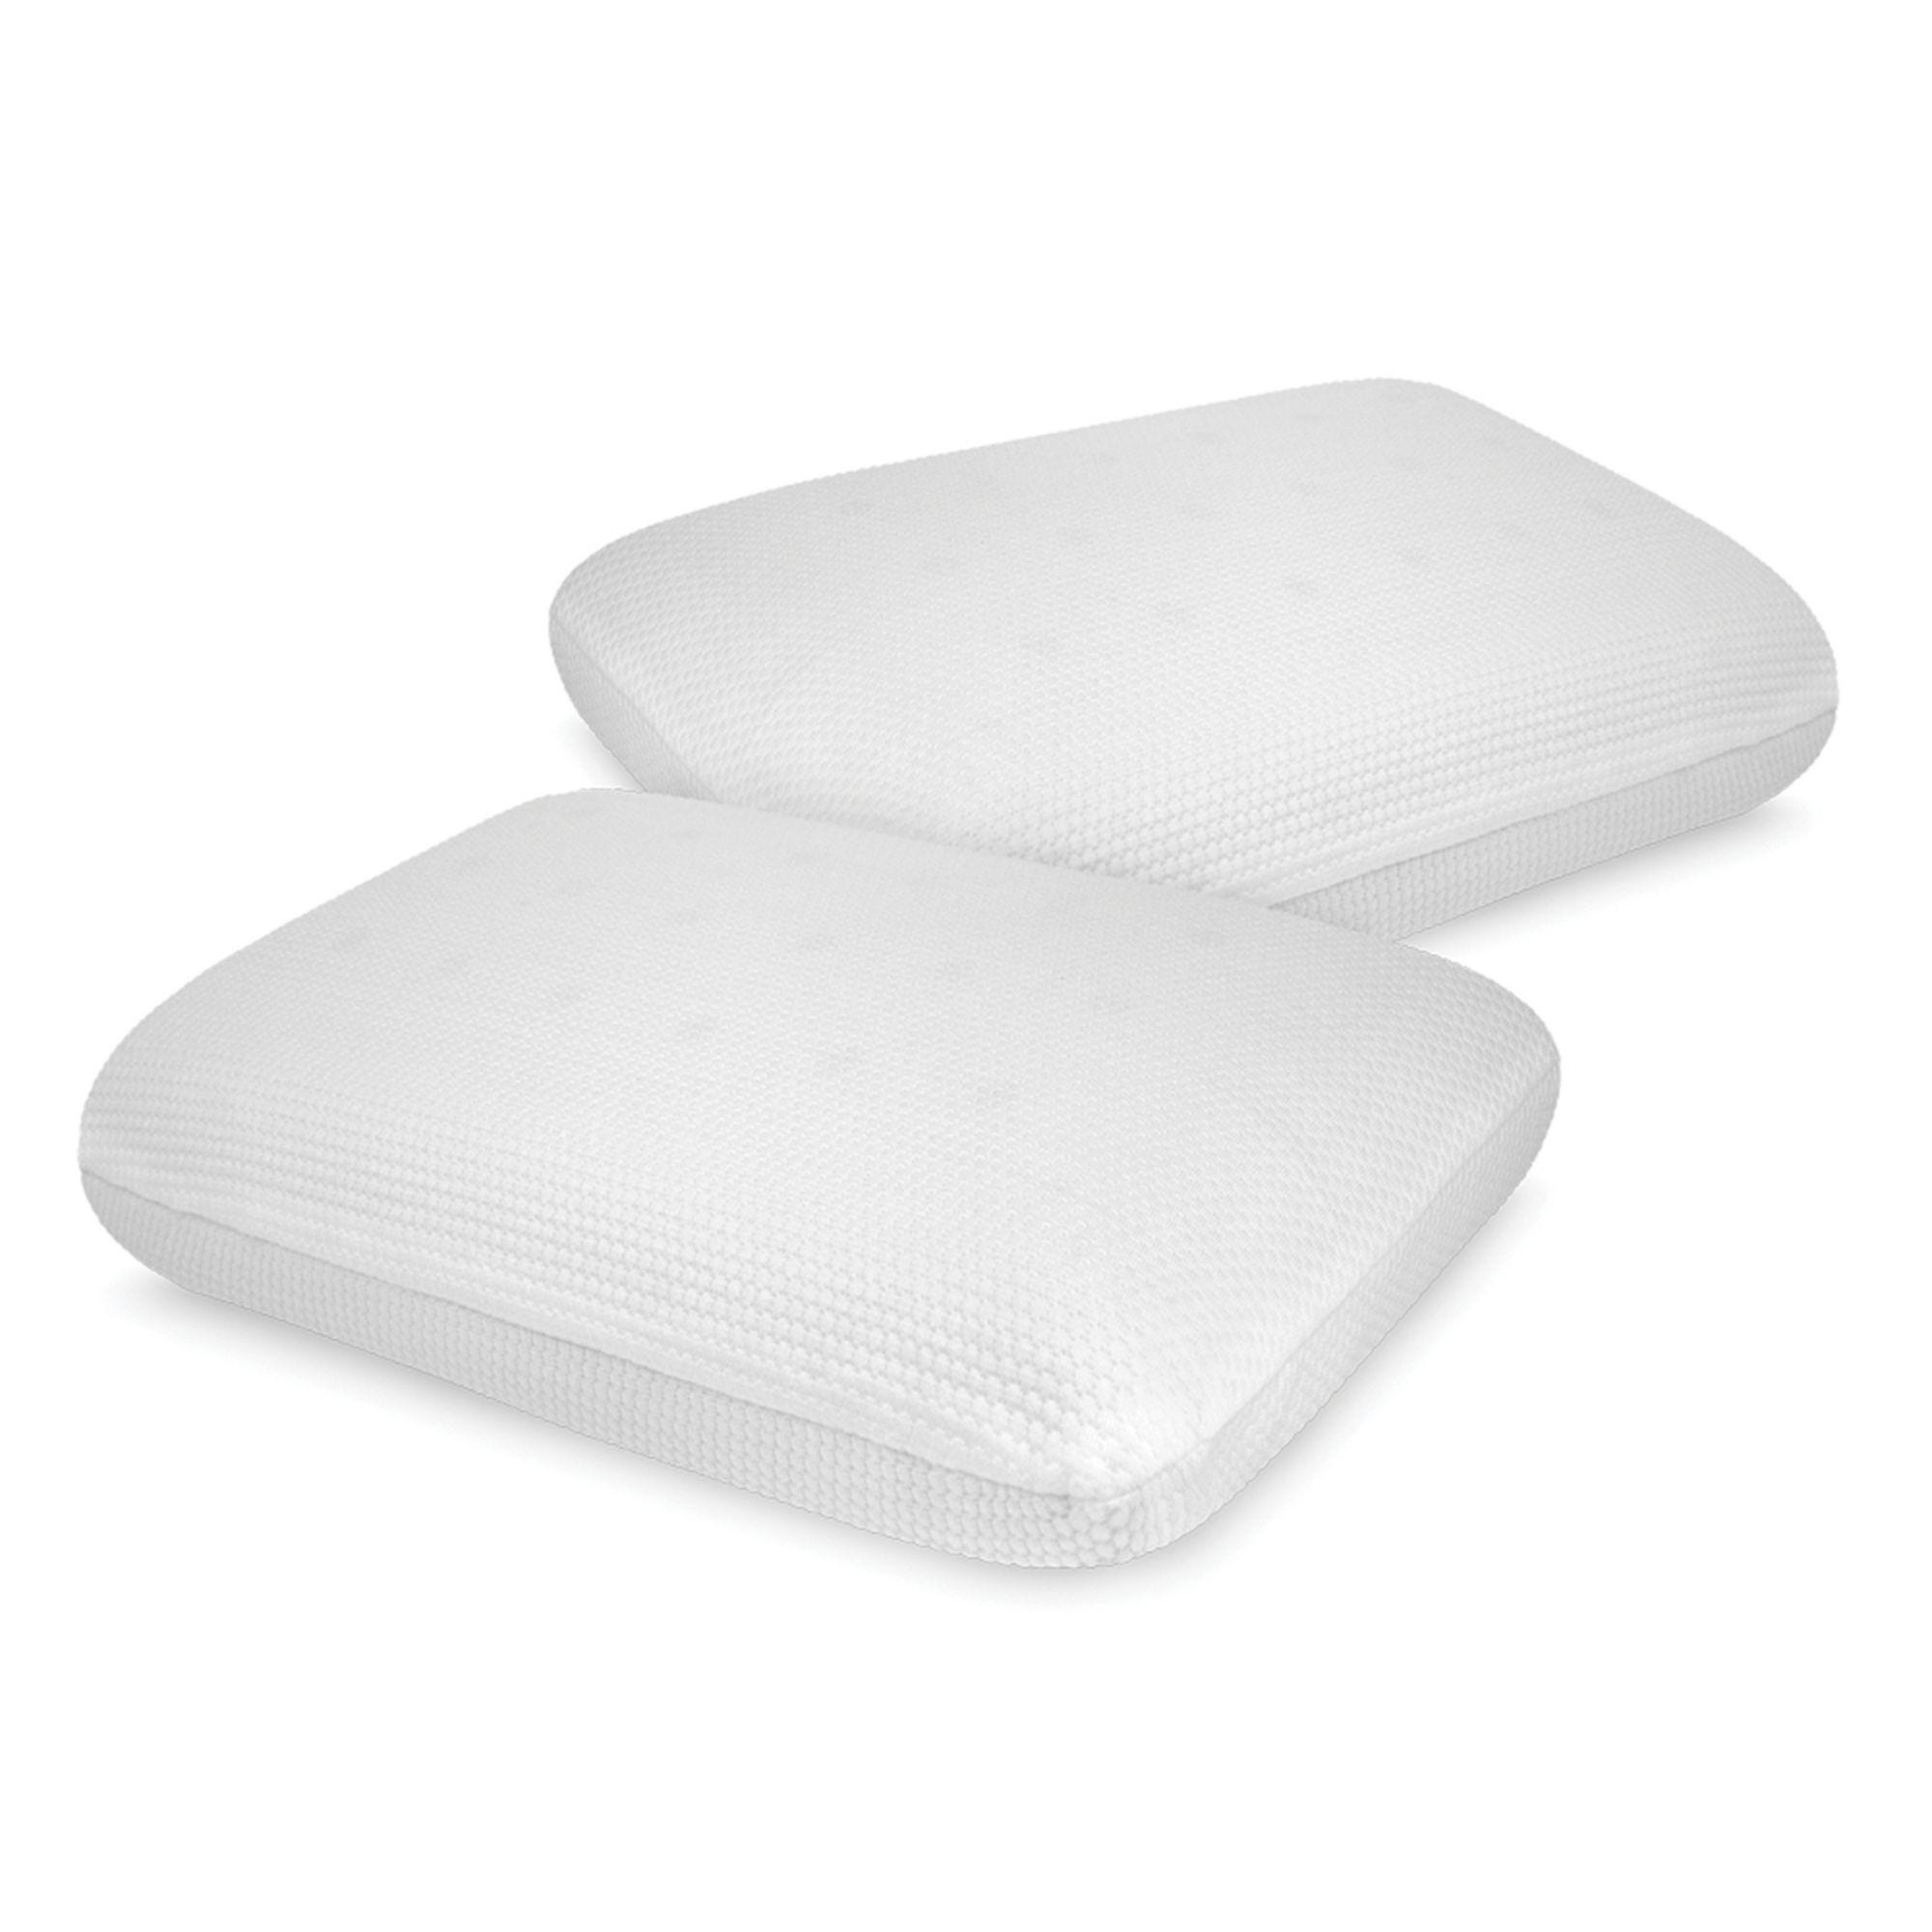 Sensorpedic Luxury Extraordinaire Gusseted Memory Foam Pillow with Ventilated Icool Technology King Size White